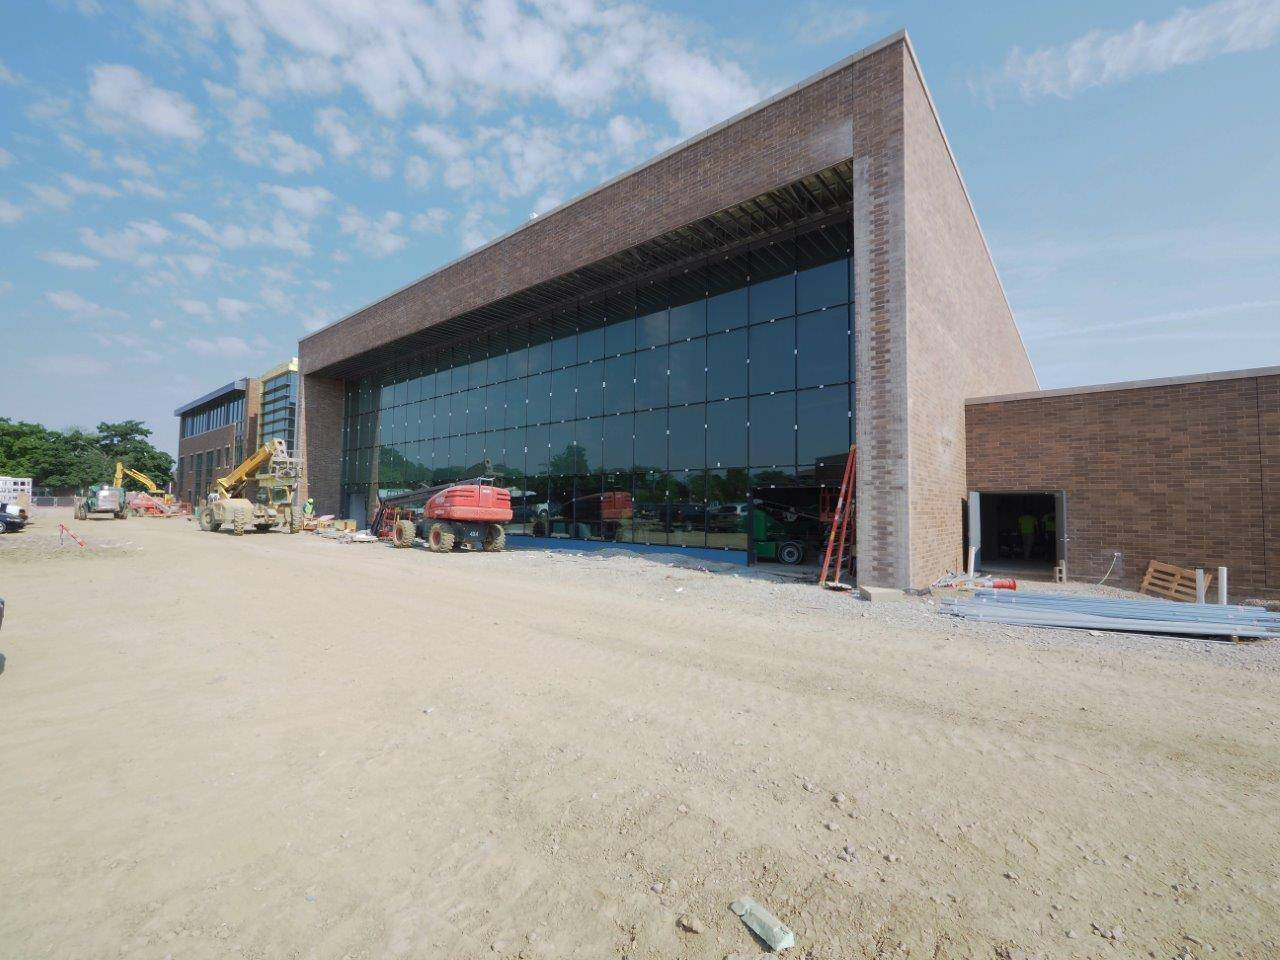 Looking at the glass windows to the natatorium